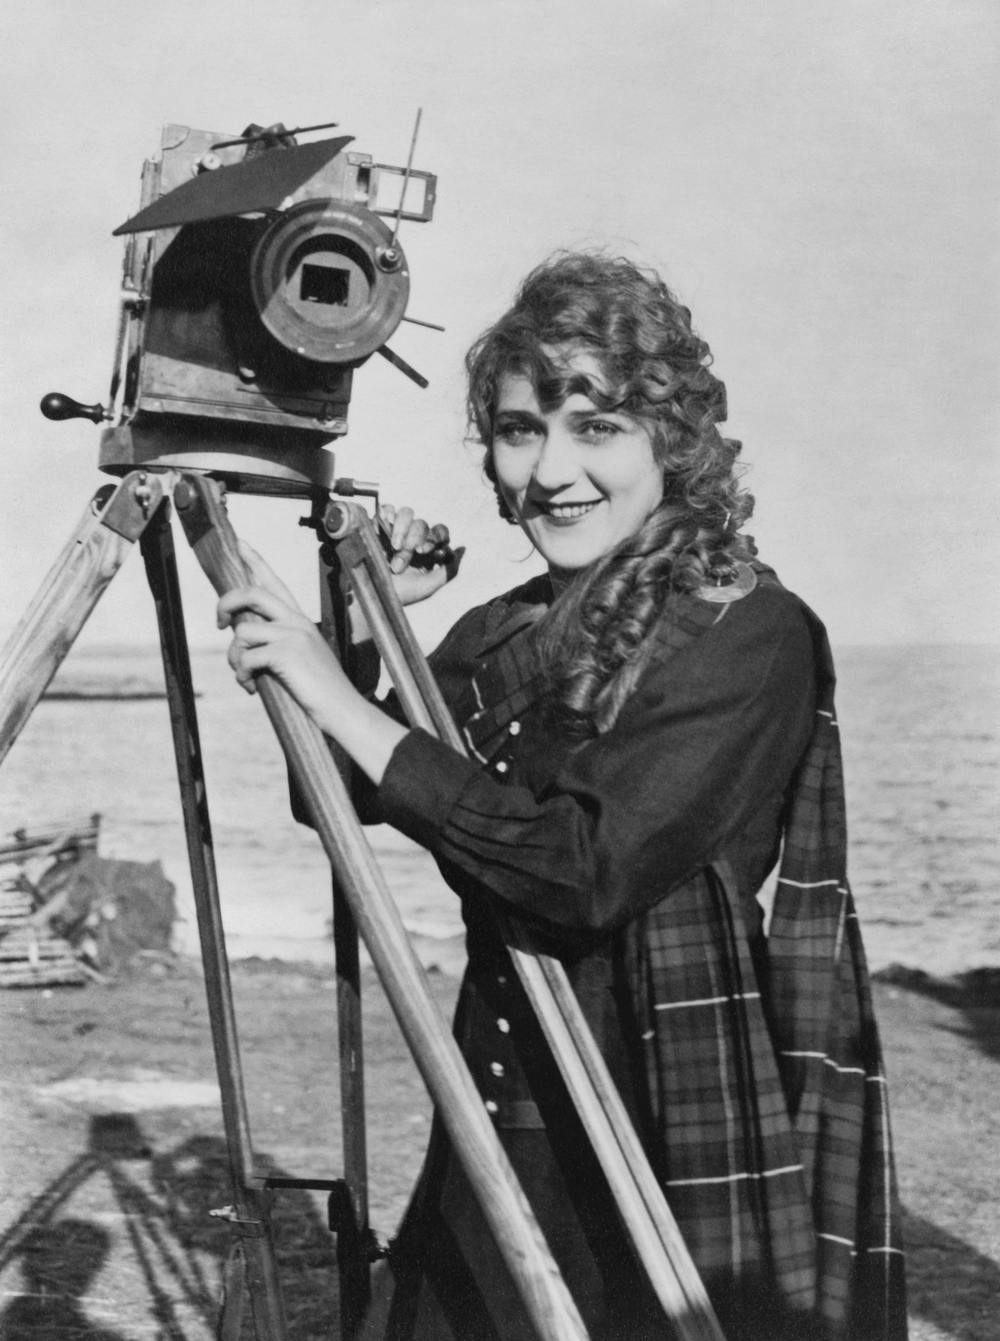 Mary_Pickford_with_camera2.jpg